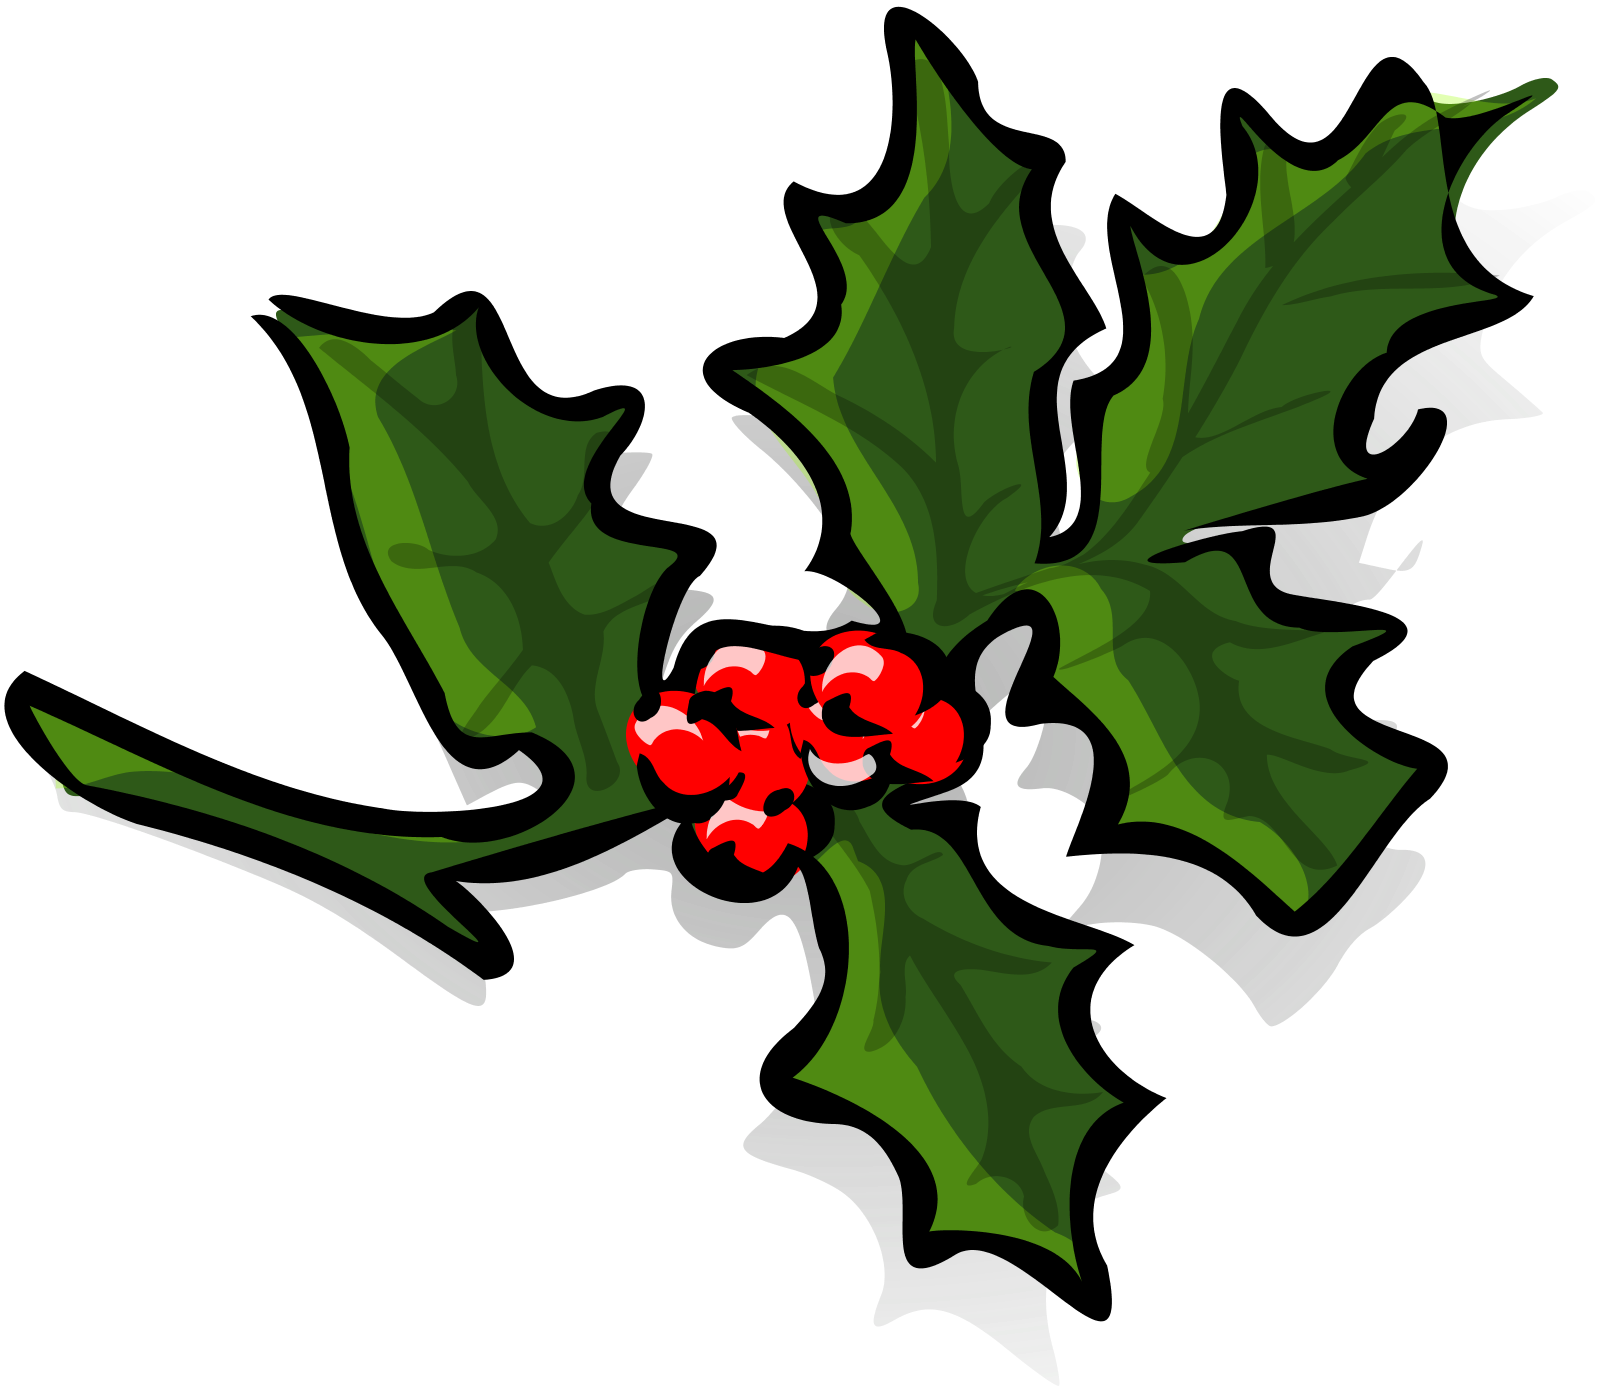 Holly tree clipart svg transparent Holly Clip Art Microsoft | Clipart Panda - Free Clipart Images svg transparent